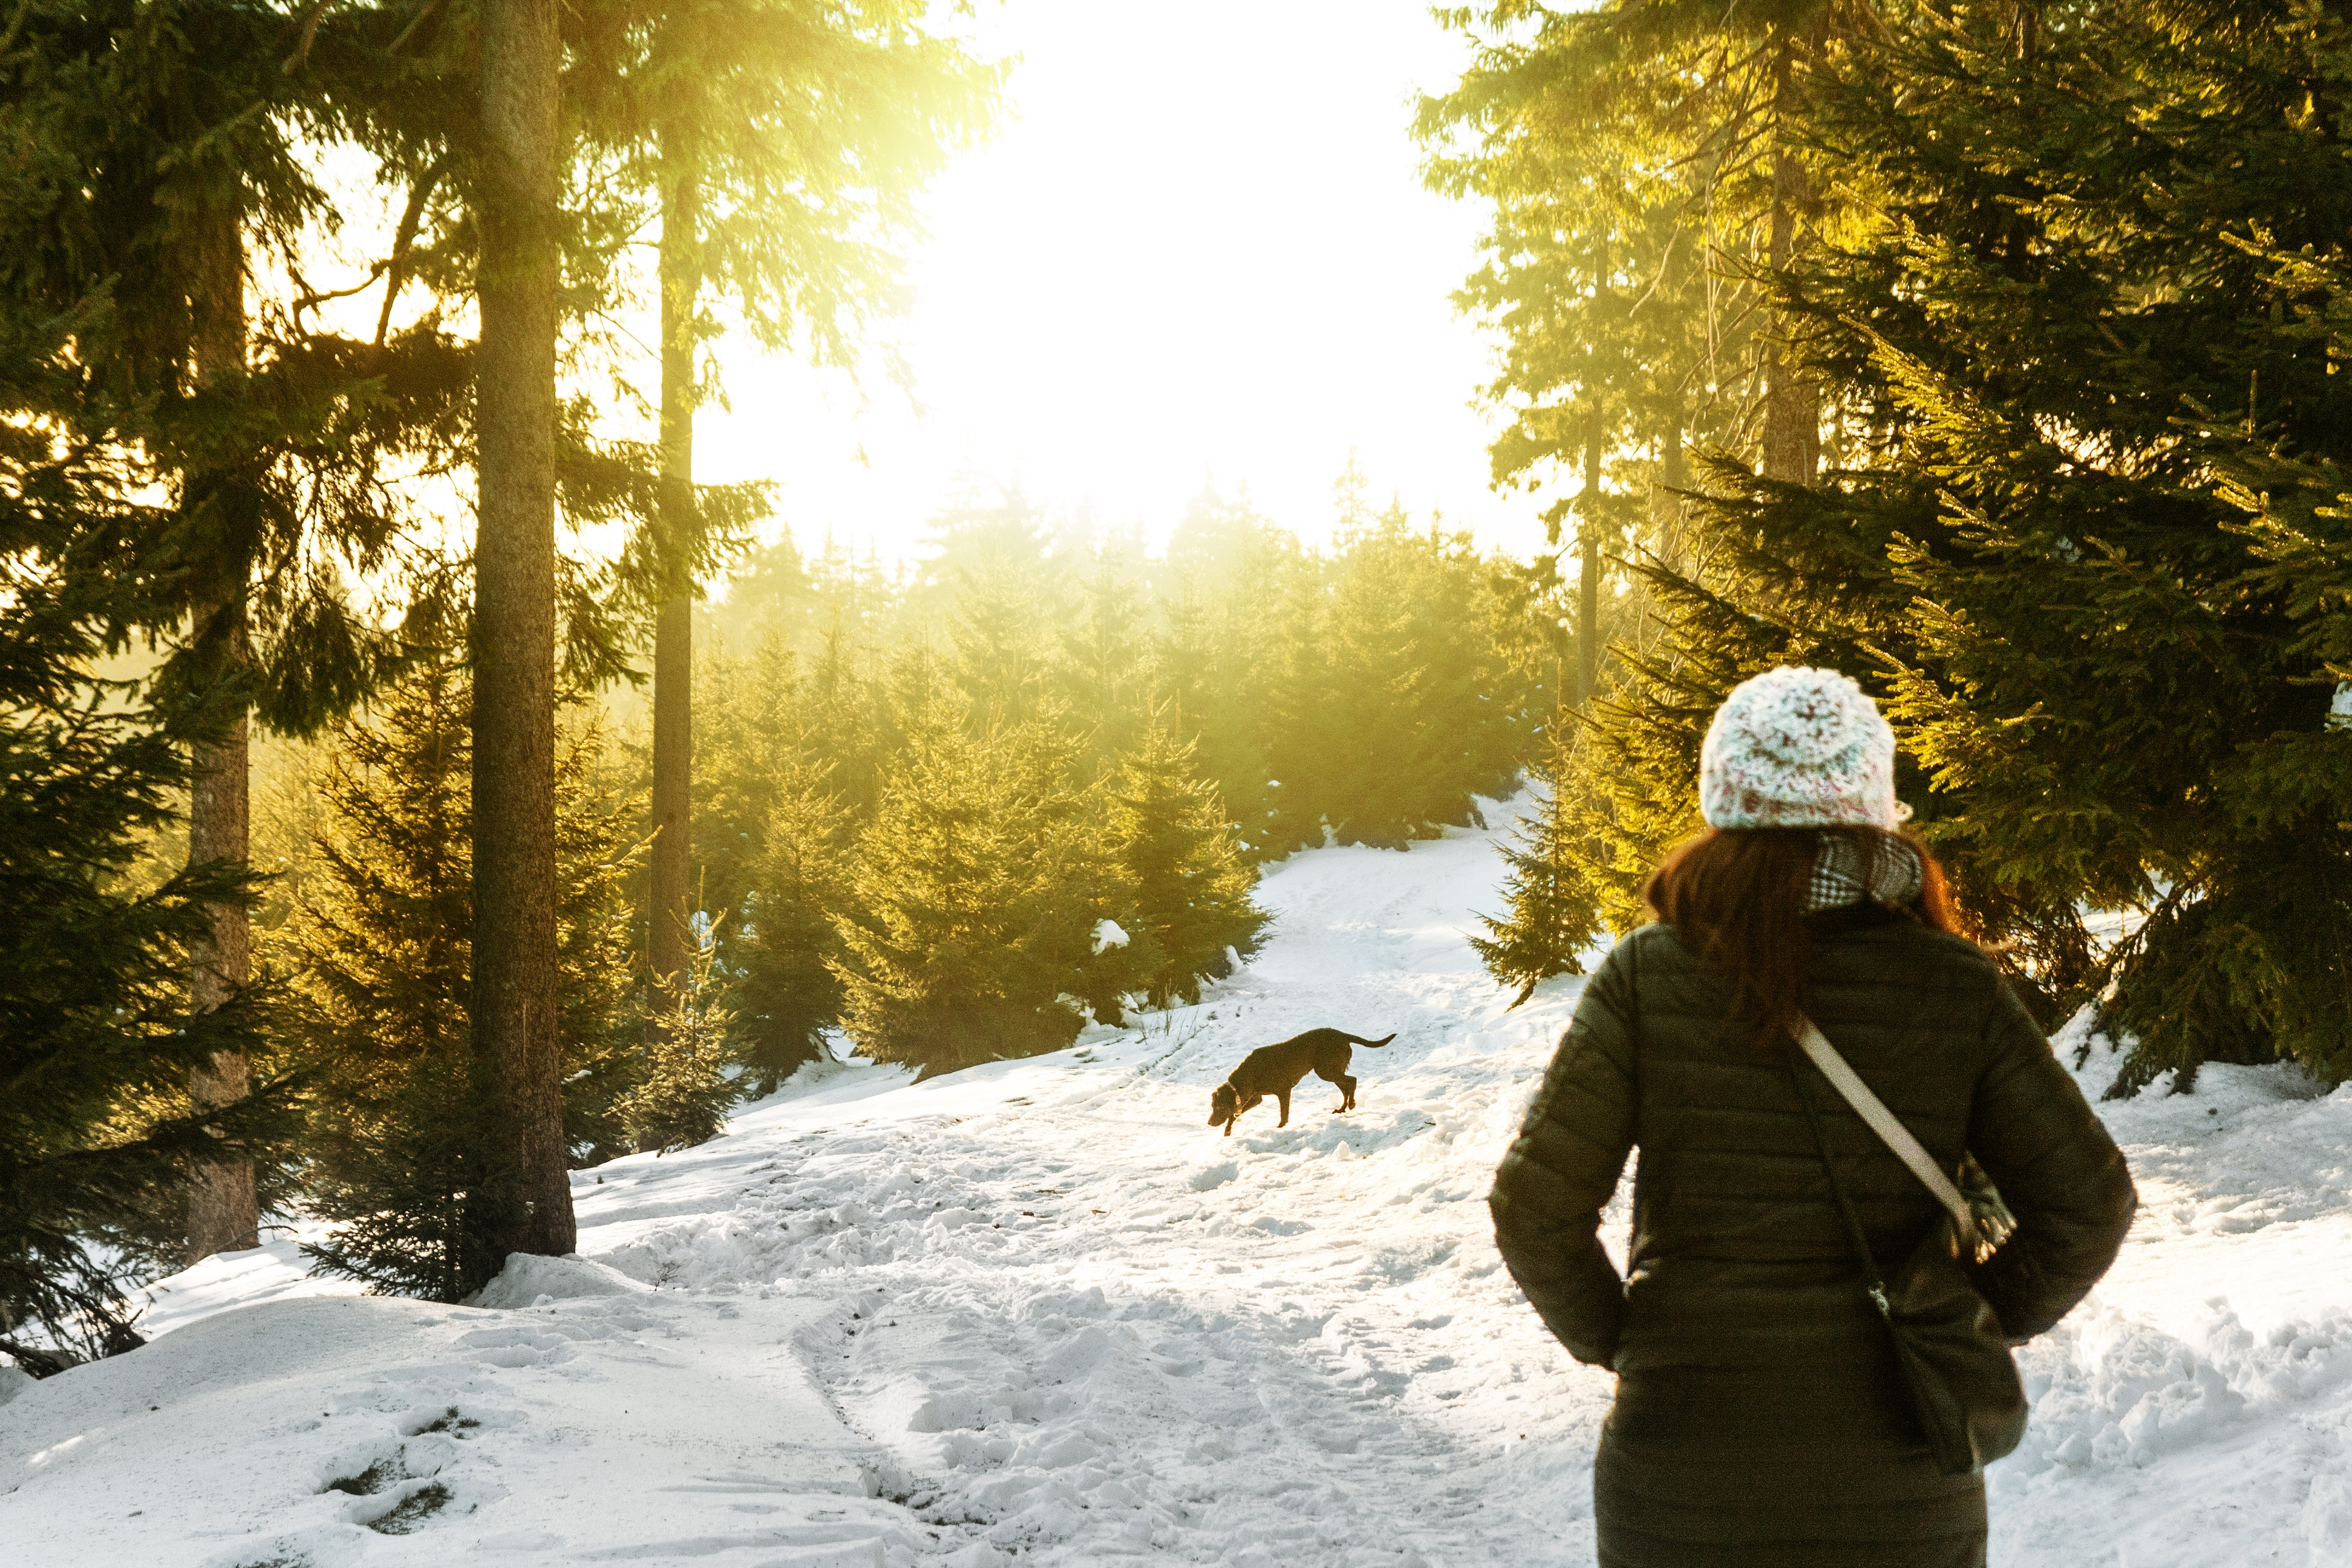 Rear View of Woman in Snow Covered Forest, Adult, Snow, Person, Pine trees, HQ Photo